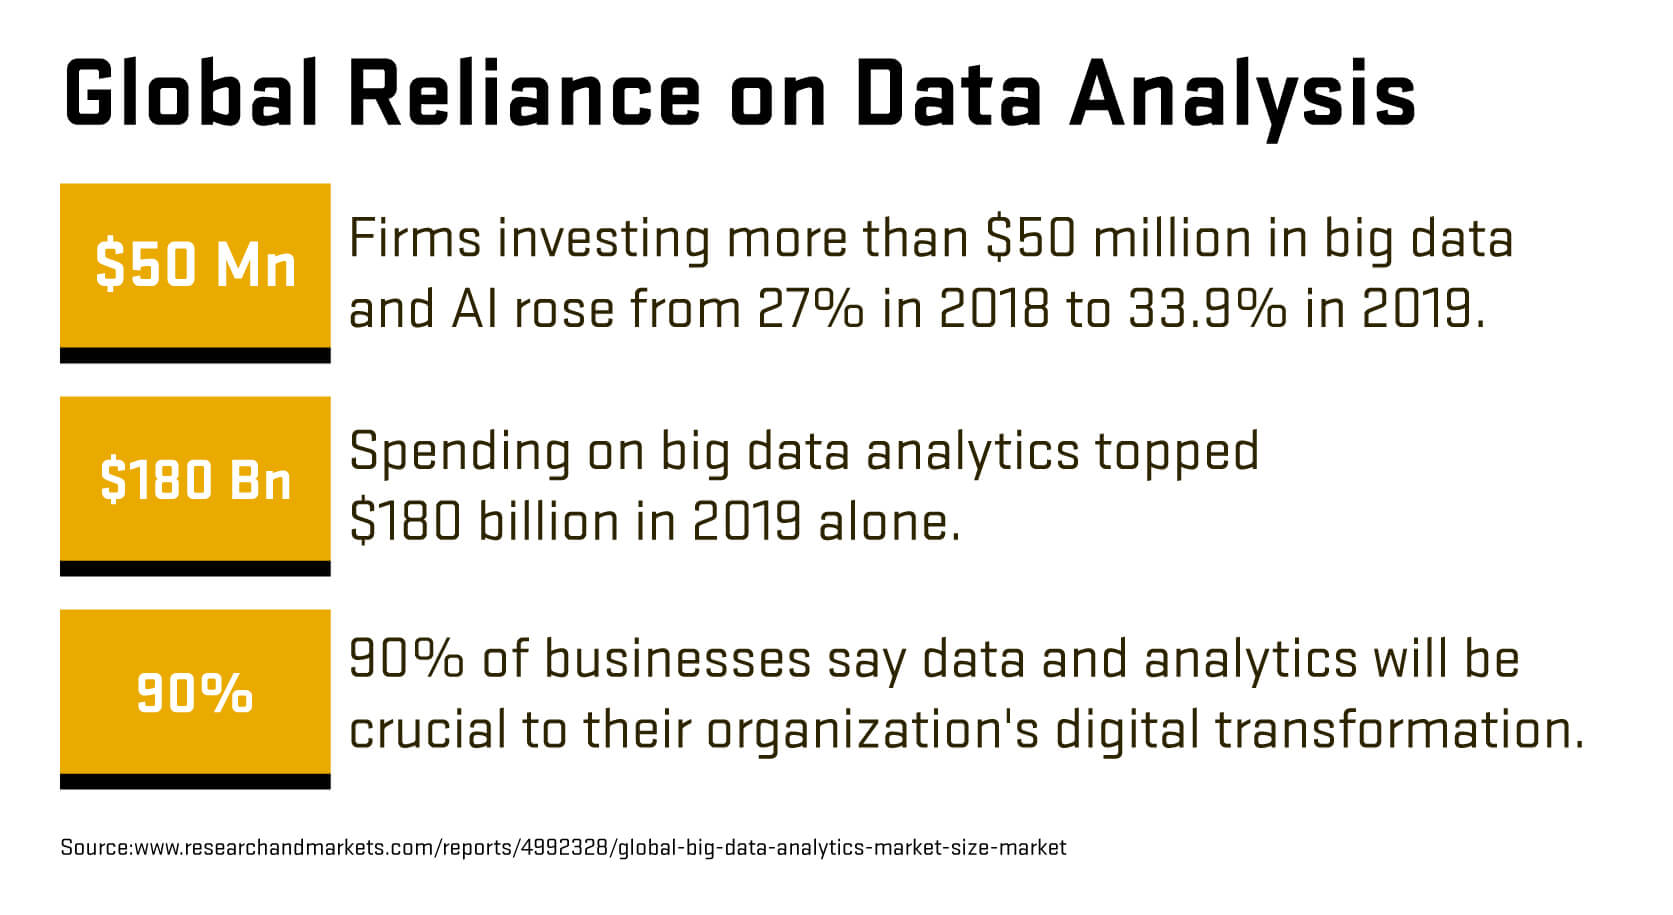 Statistics showing the increasing global reliance on data analysis